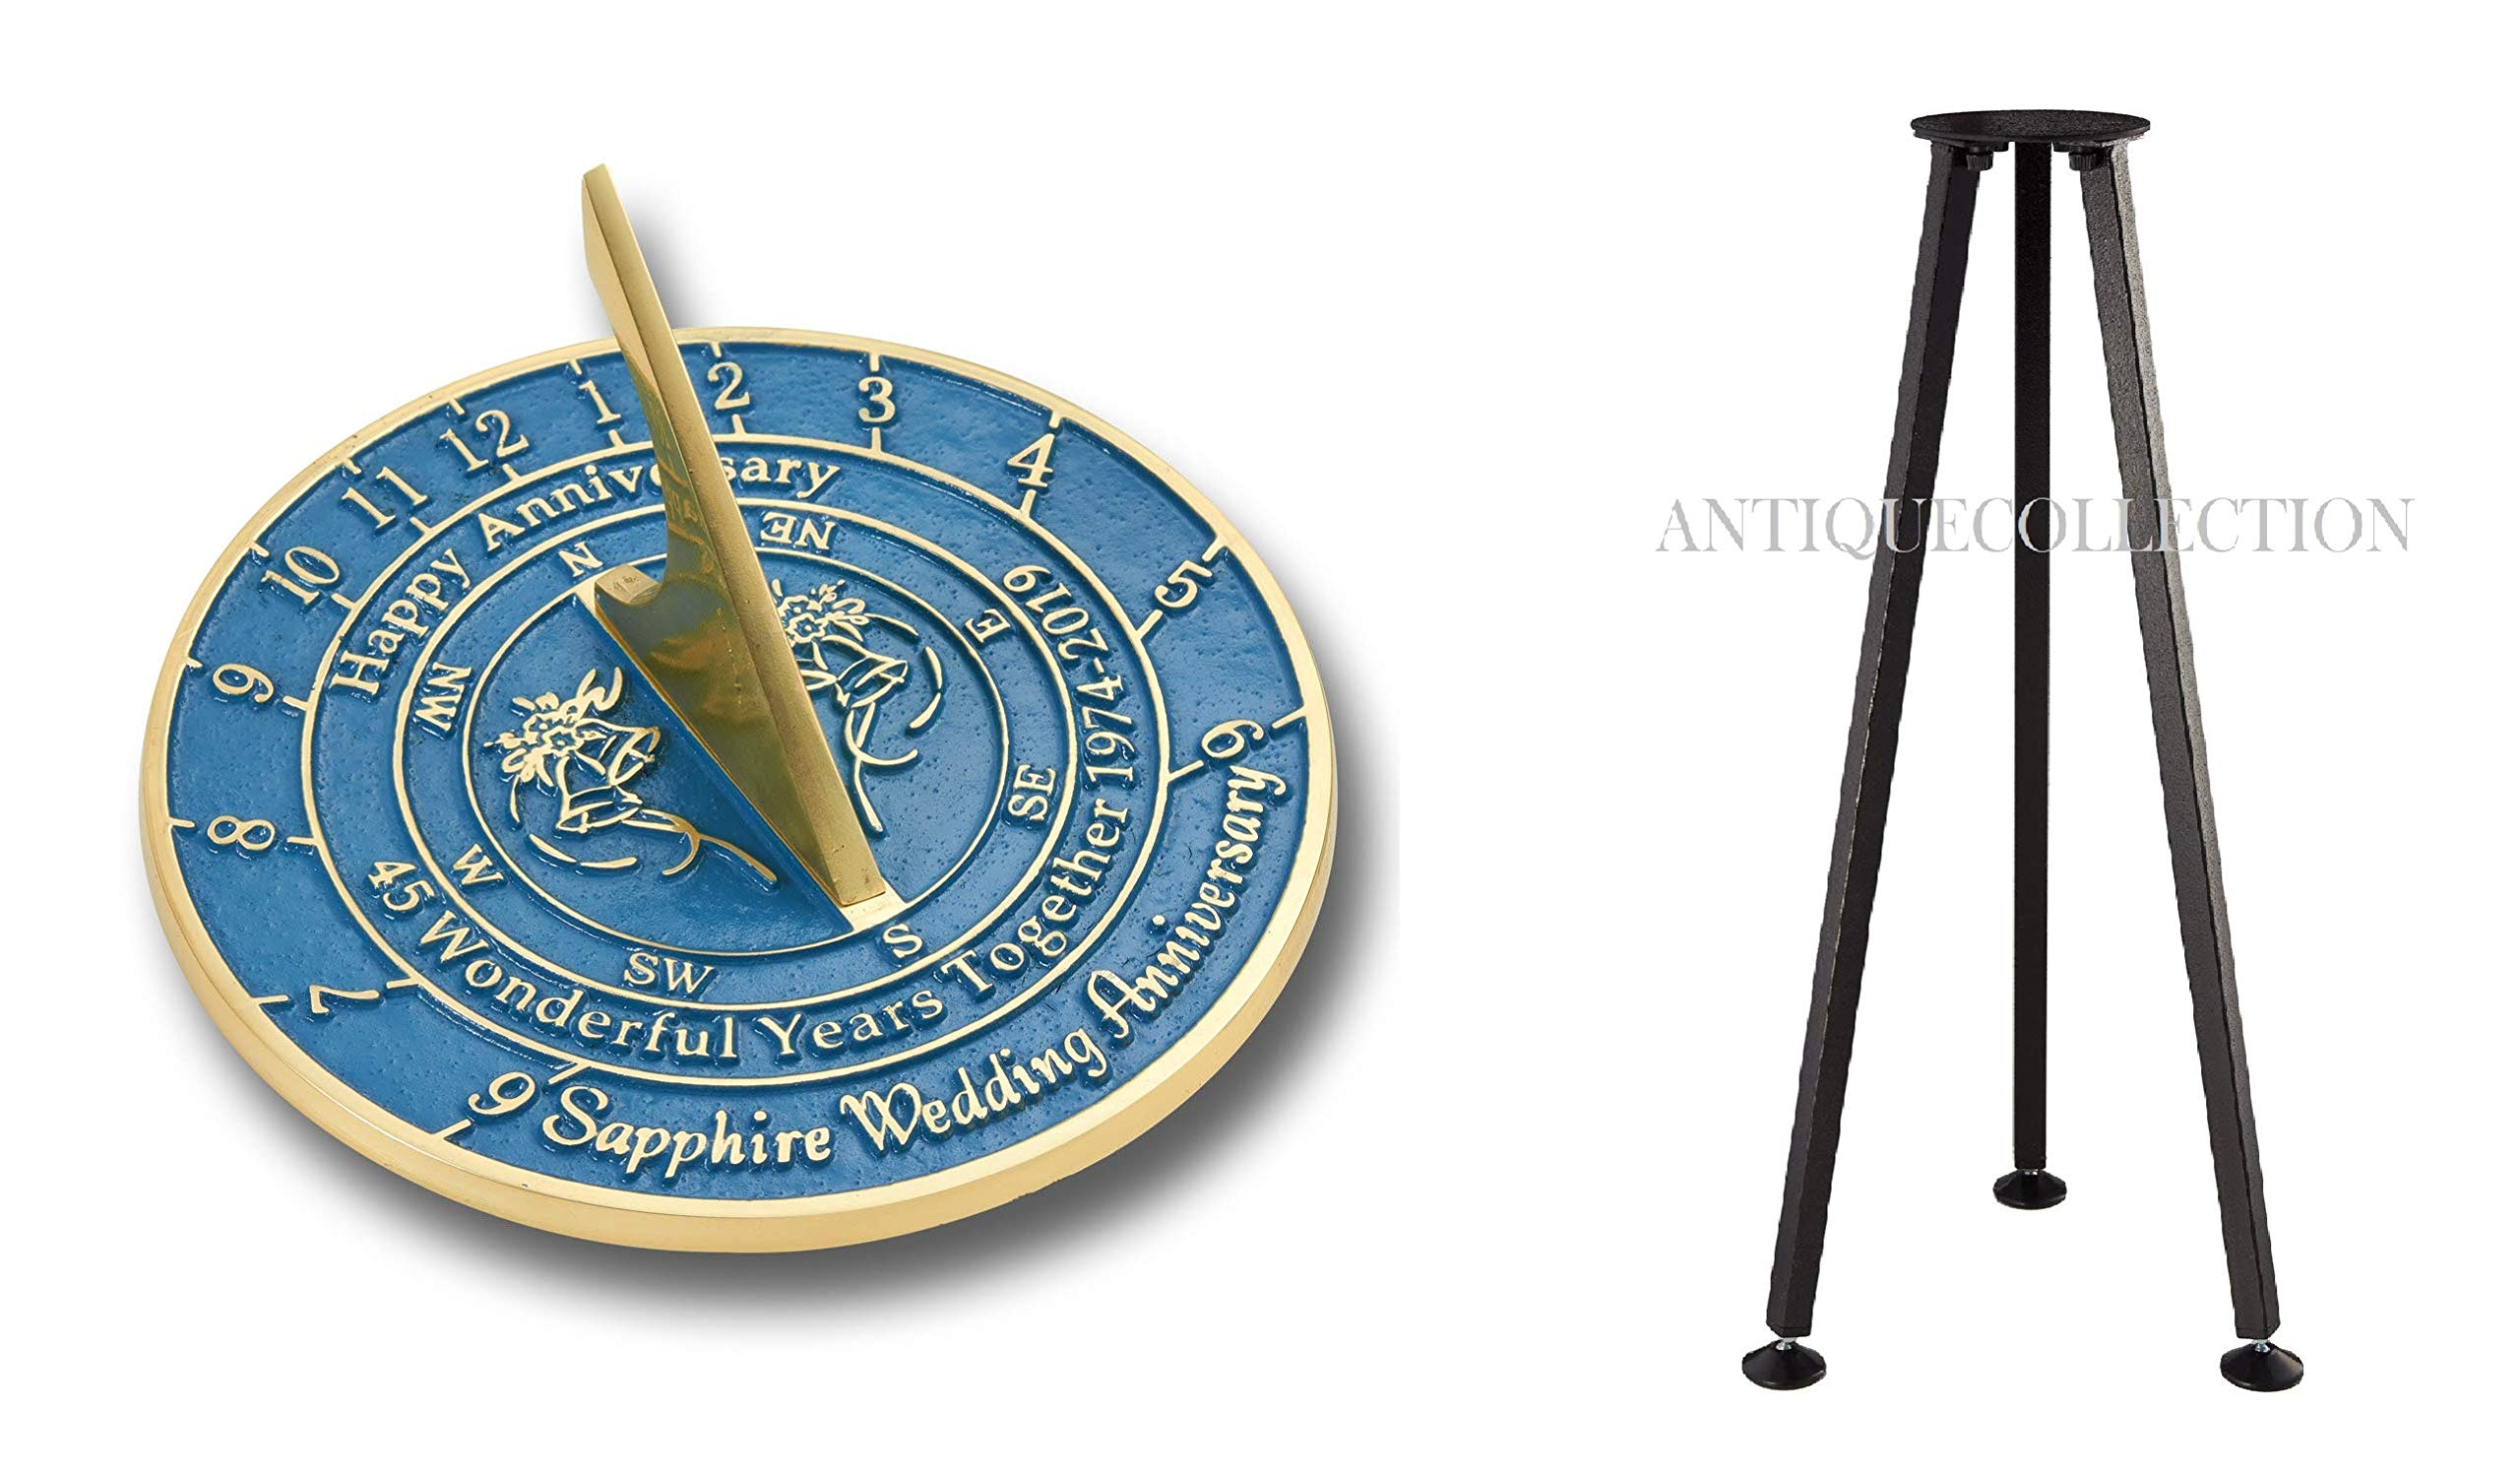 ANTIQUECOLLECTION 45th Sapphire Wedding Anniversary Sundial Gift with Stand